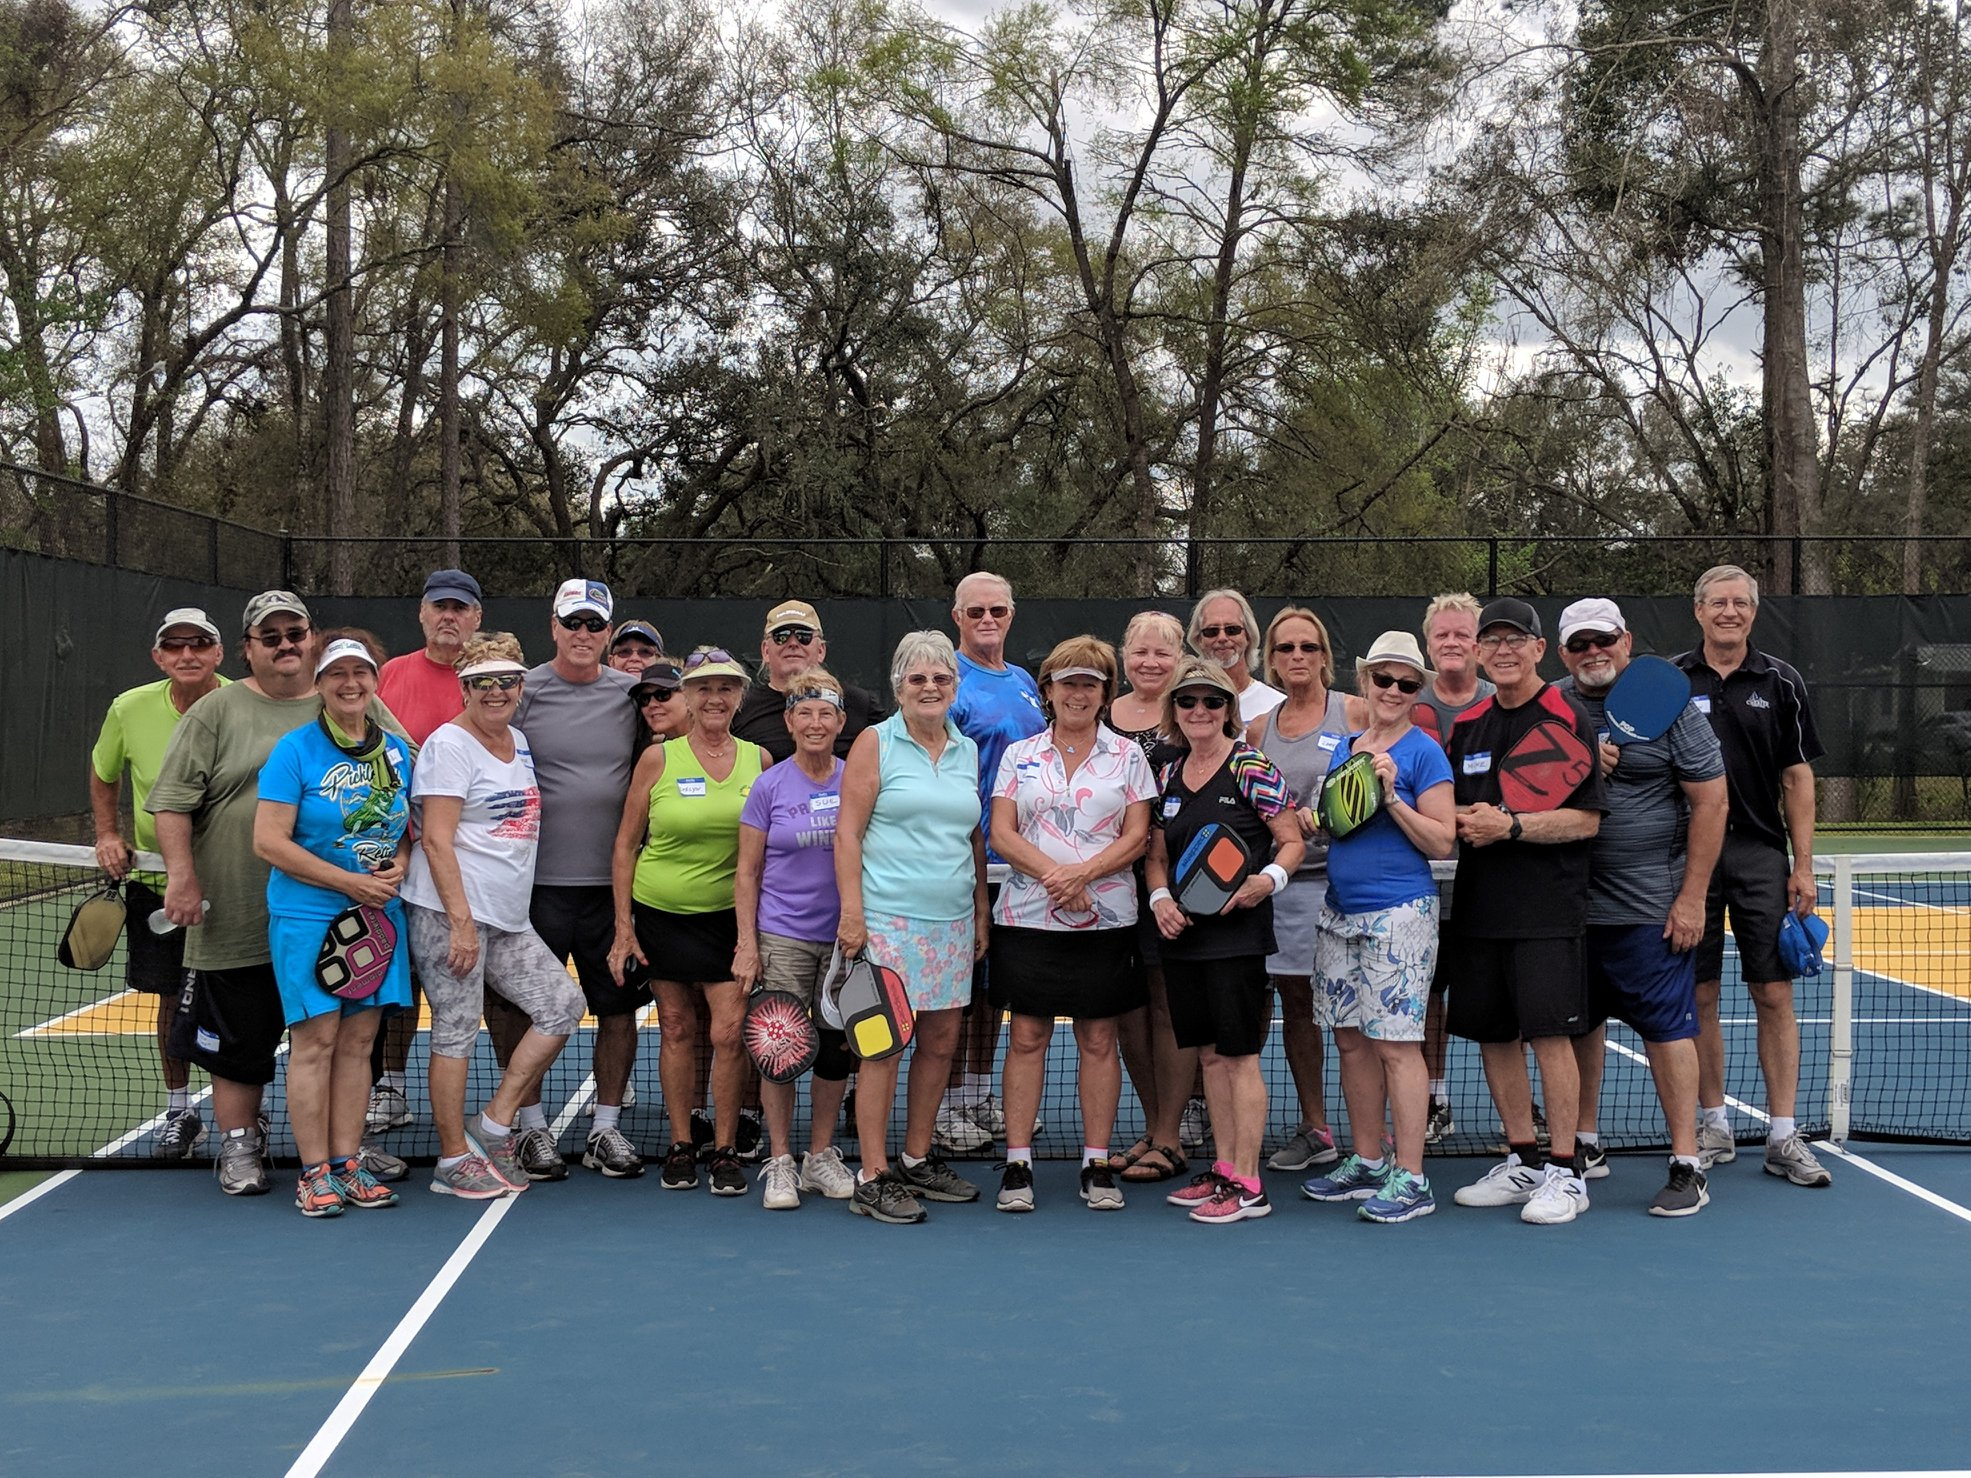 pickleball, active adult communities, florida adult communities, florida retirement communities, active adult communities florida, florida retirement, manufactured home communities, mobile home communities, manufactured homes florida, manufactured home communities florida